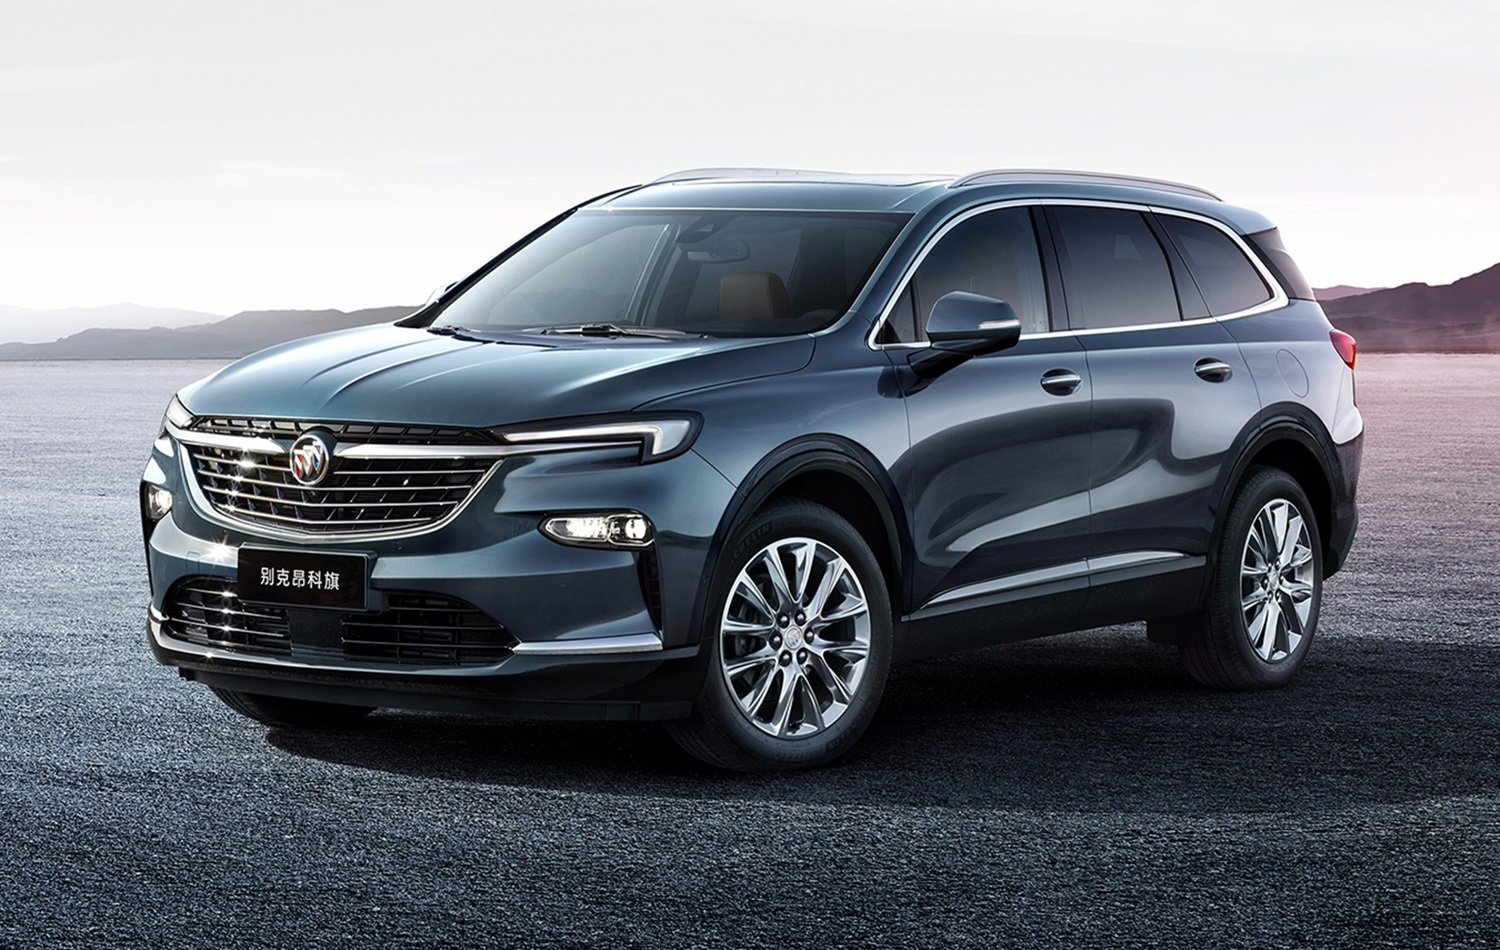 Buick Enclave Refresh Pushed Back To 2022 | Gm Authority New 2022 Buick Enclave Avenir Reviews, Cost, Colors